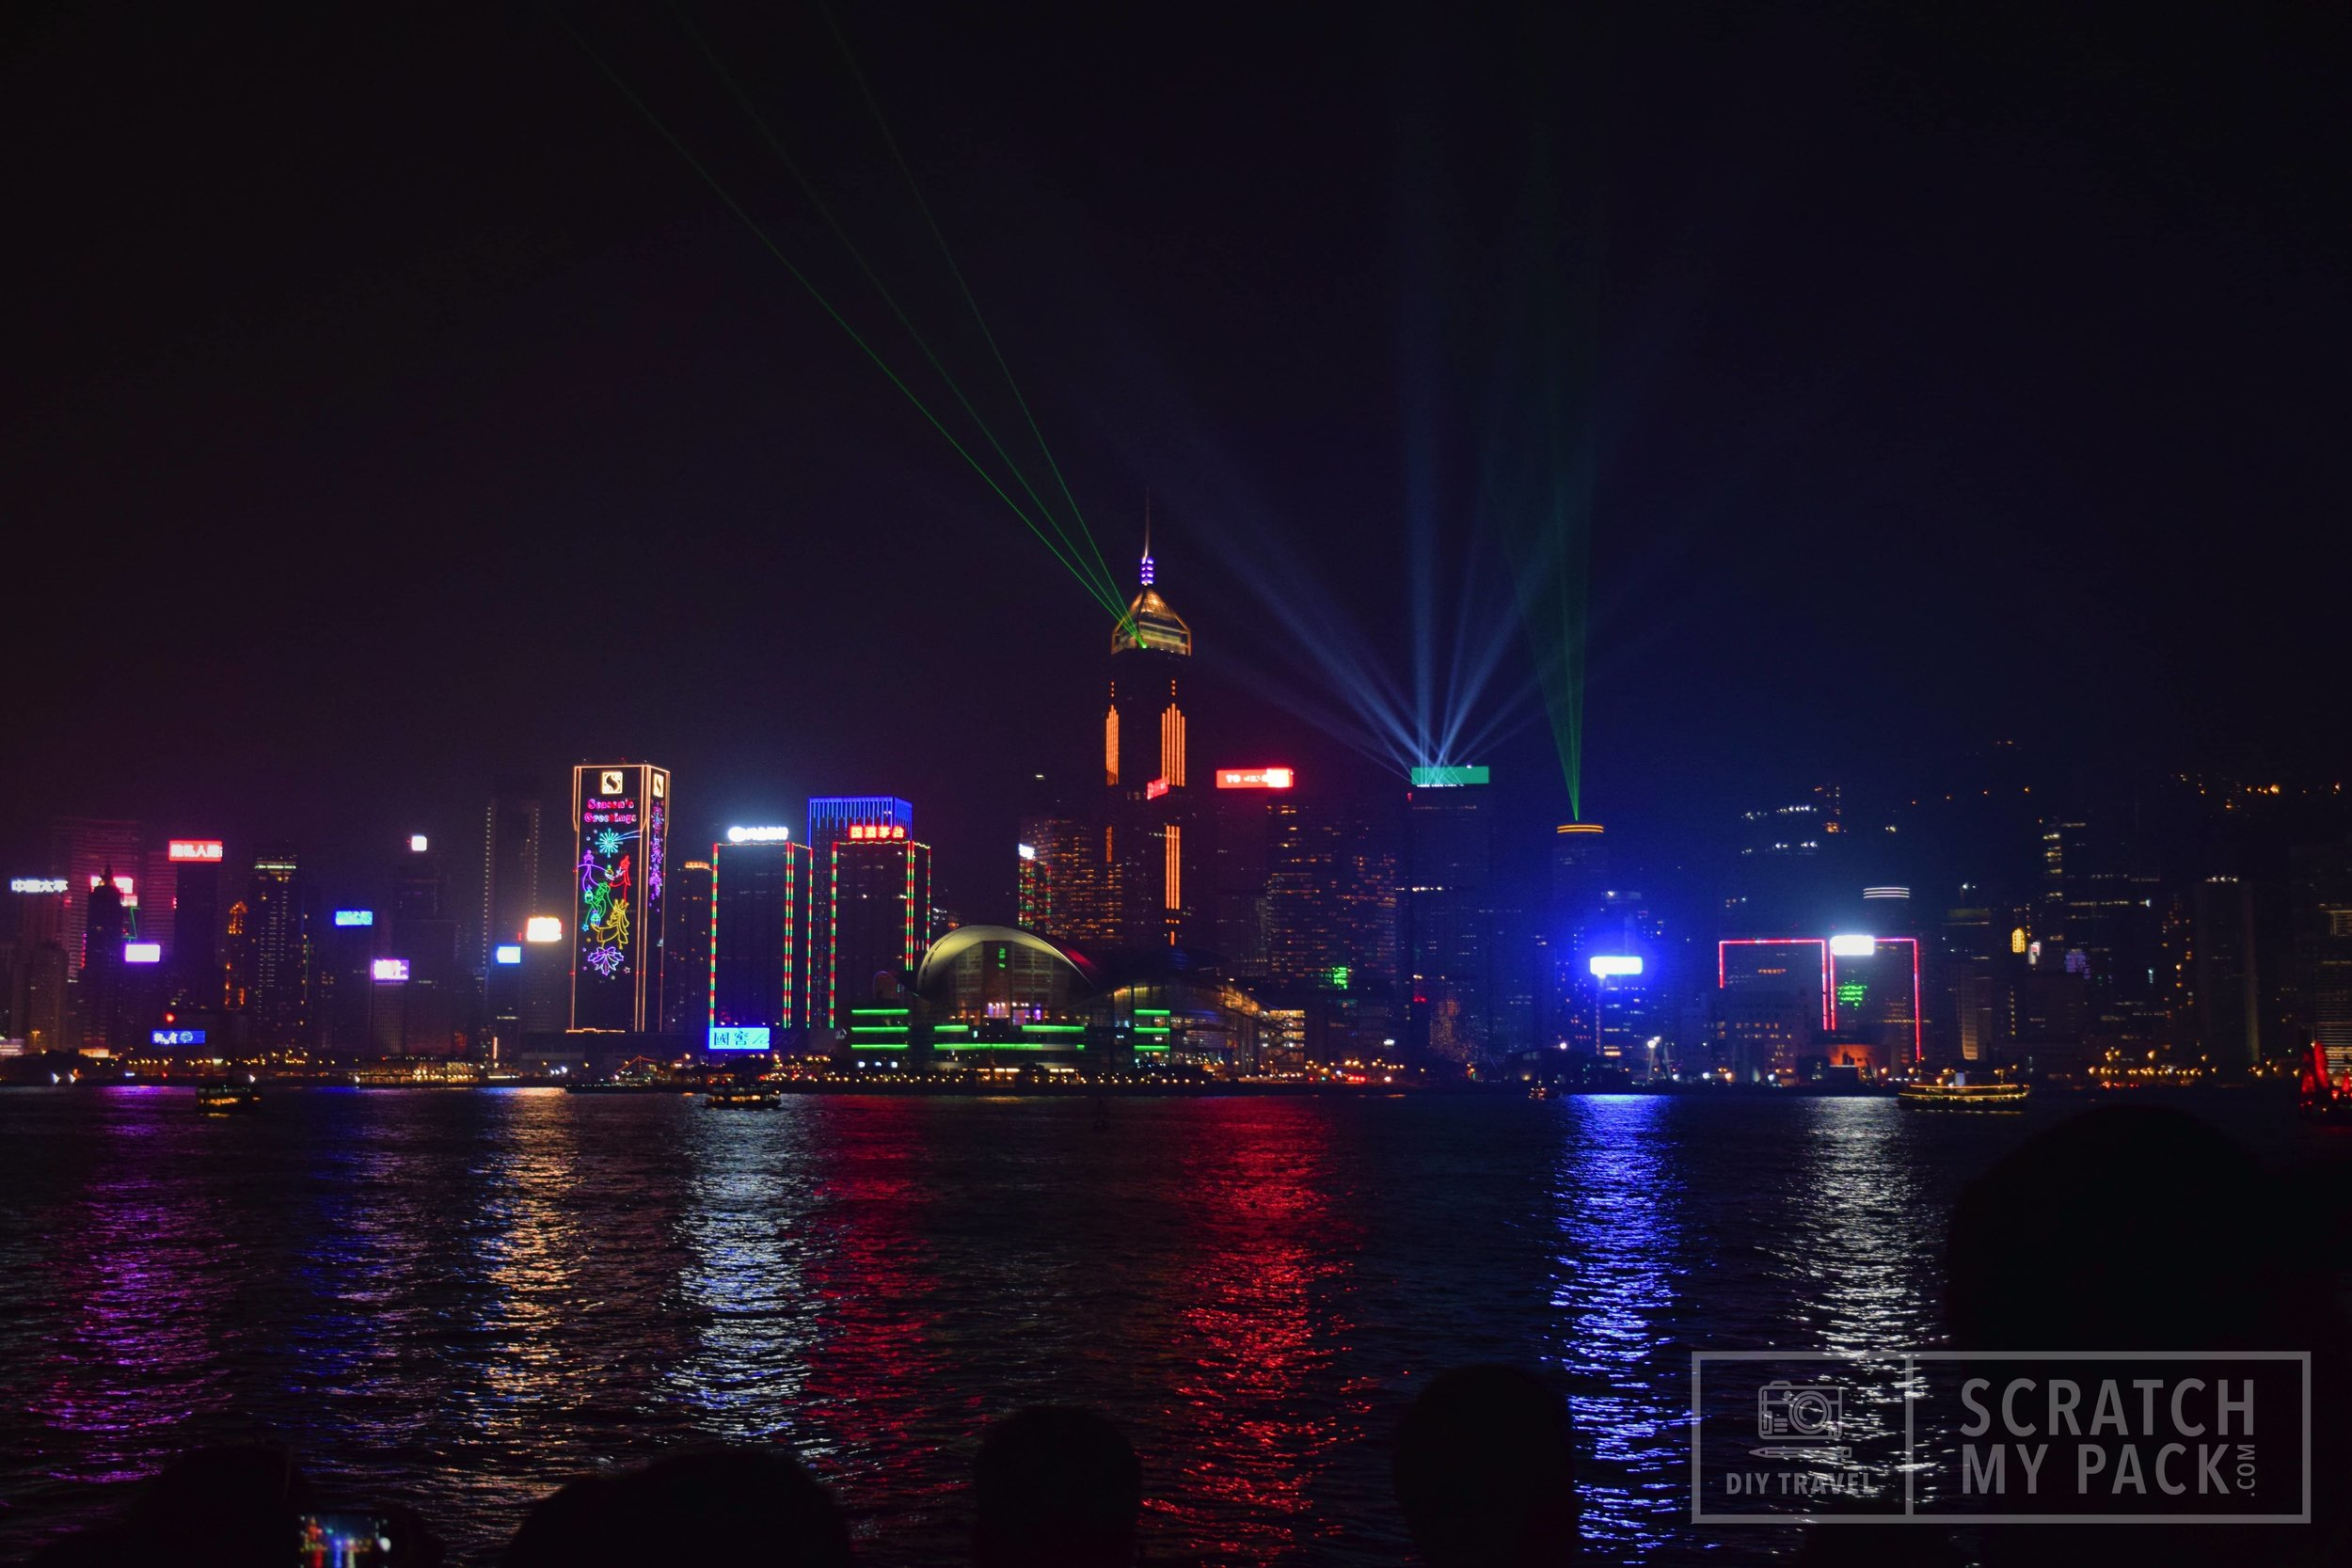 Symphony of Lights (SoL) at Victoria Harbour -   Free to watch  - This has been the icon of Hong Kong and Victoria Harbor since its conception ion 2004. In December 2017, The Hong Kong Philharmonic Orchestra recorded a new musical score for the event, and now has over 40 buildings that contribute to the myriad of searchlights, lasers, LED screens and lighting that illuminates the skyline at 8pm every night.